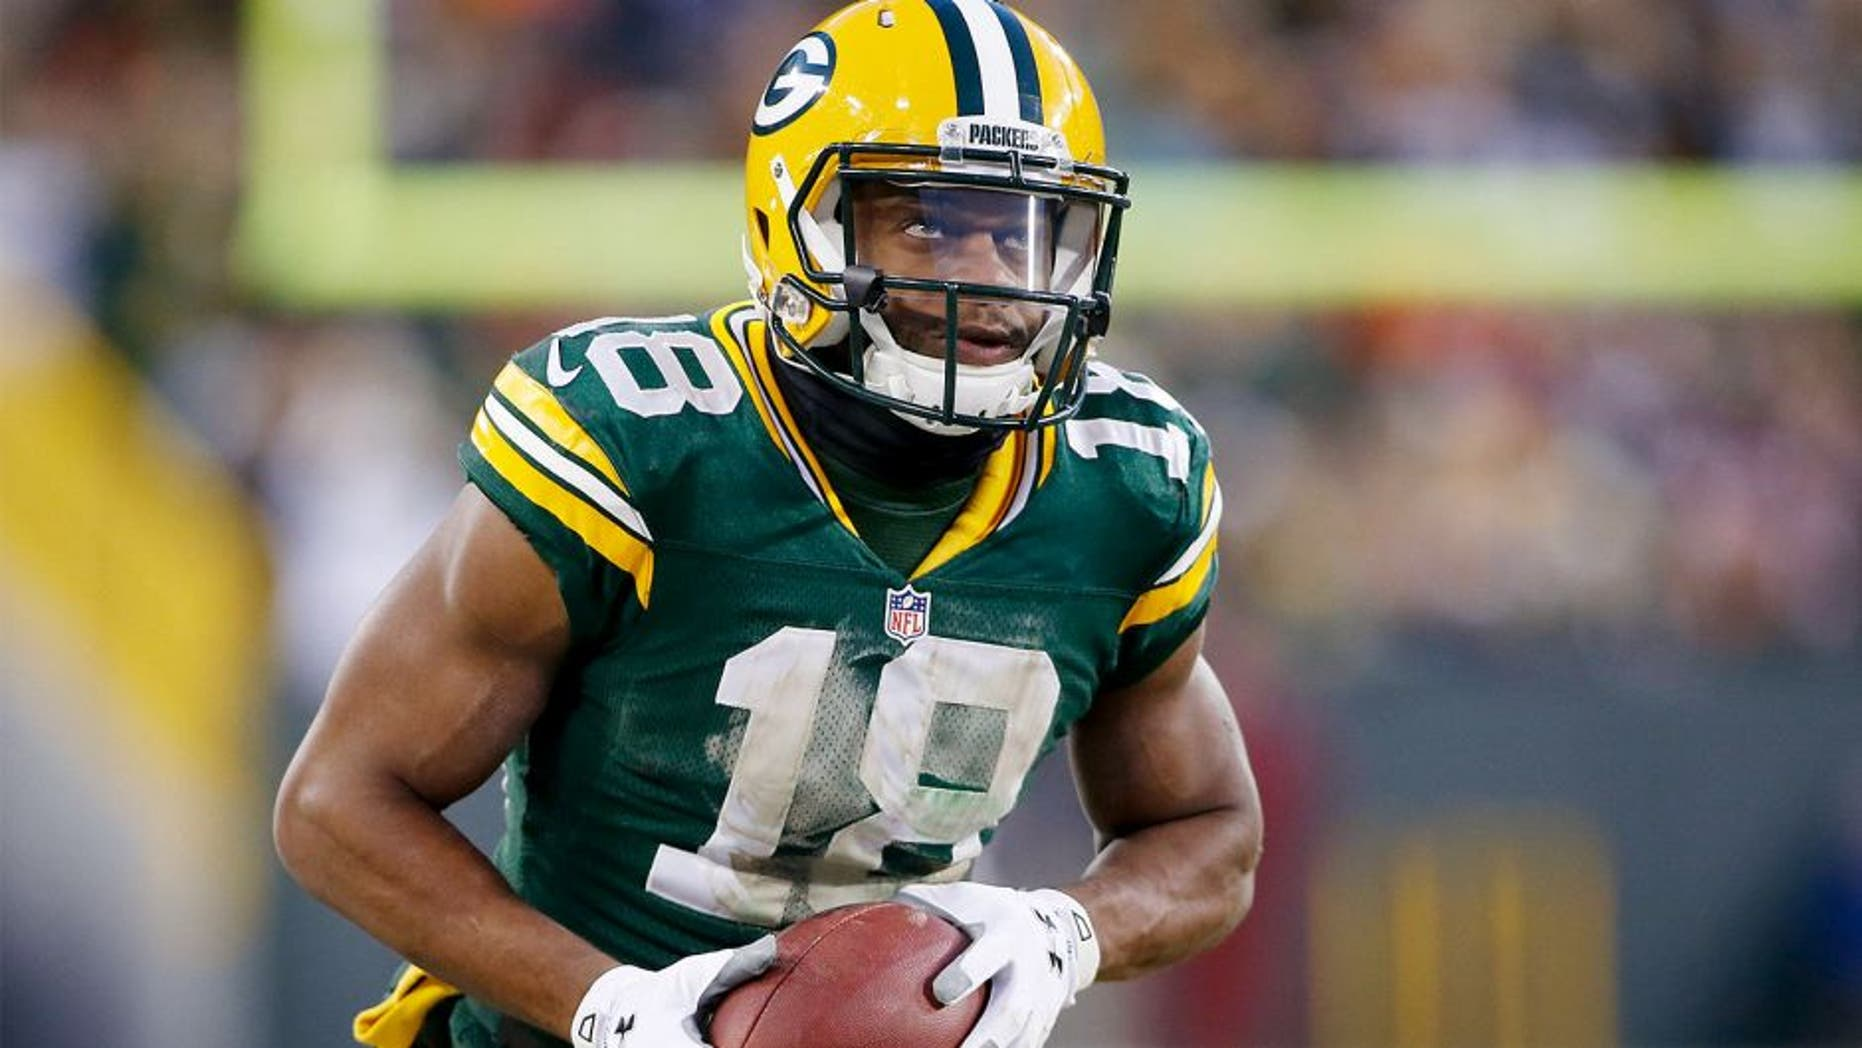 Nov 30, 2014; Green Bay, WI, USA; Green Bay Packers wide receiver Randall Cobb (18) during the game against the New England Patriots at Lambeau Field. Mandatory Credit: Chris Humphreys-USA TODAY Sports